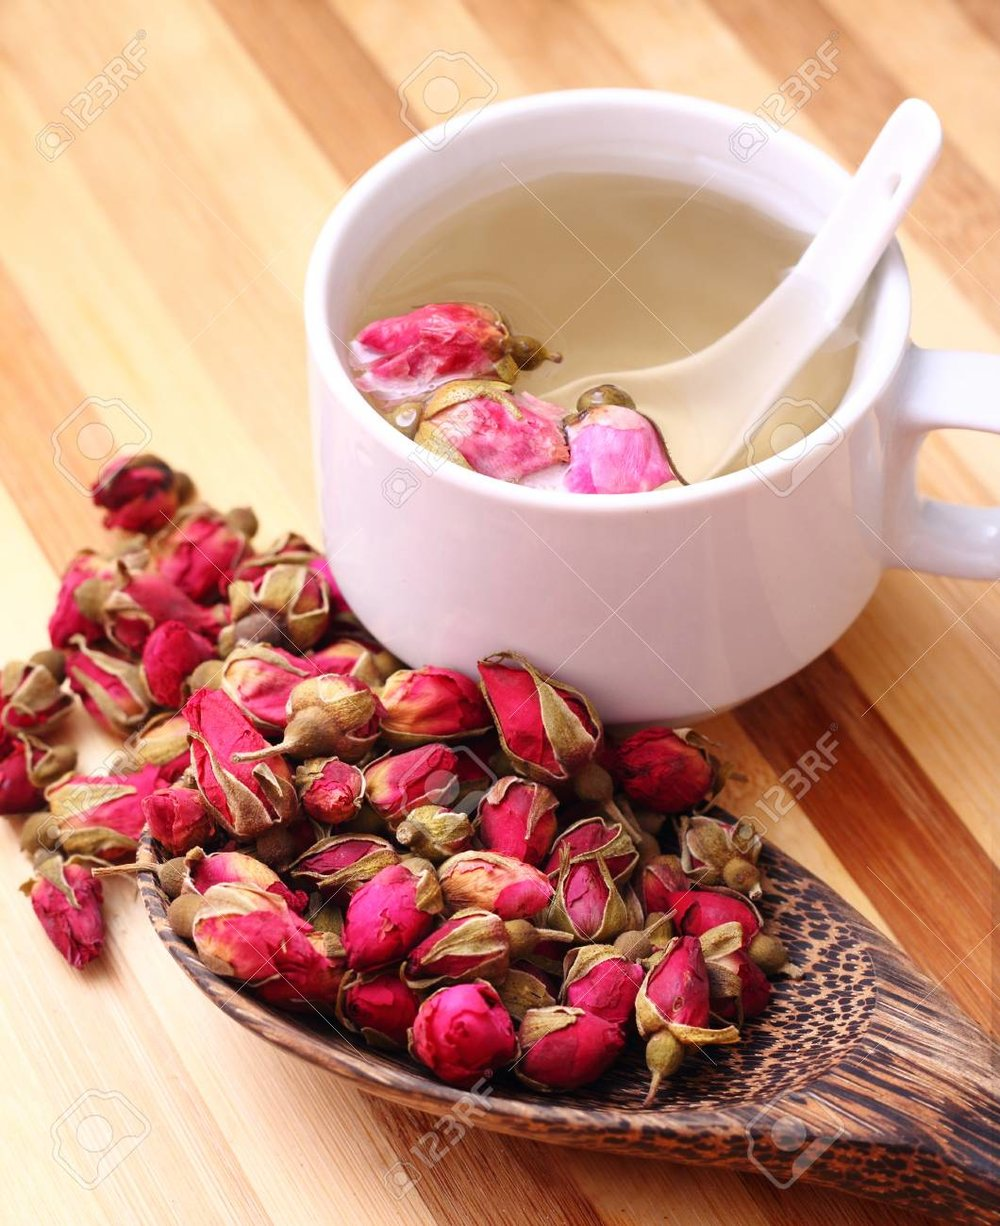 23556433-dried-roses-wooden-scoop-and-a-cup-of-rose-tea-on-simple-background.jpg